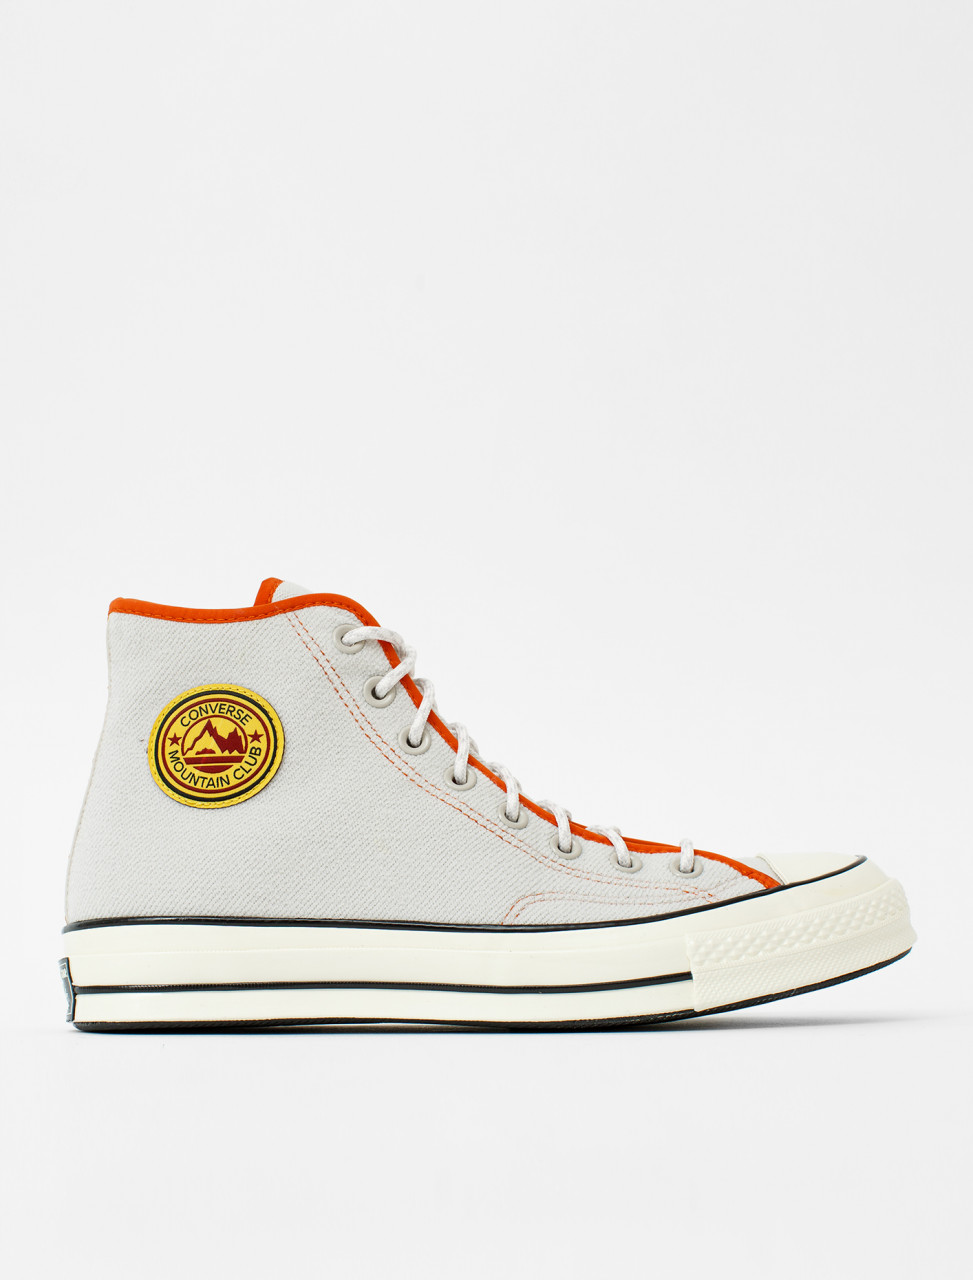 East Village Explorer Chuck 70 High Sneaker